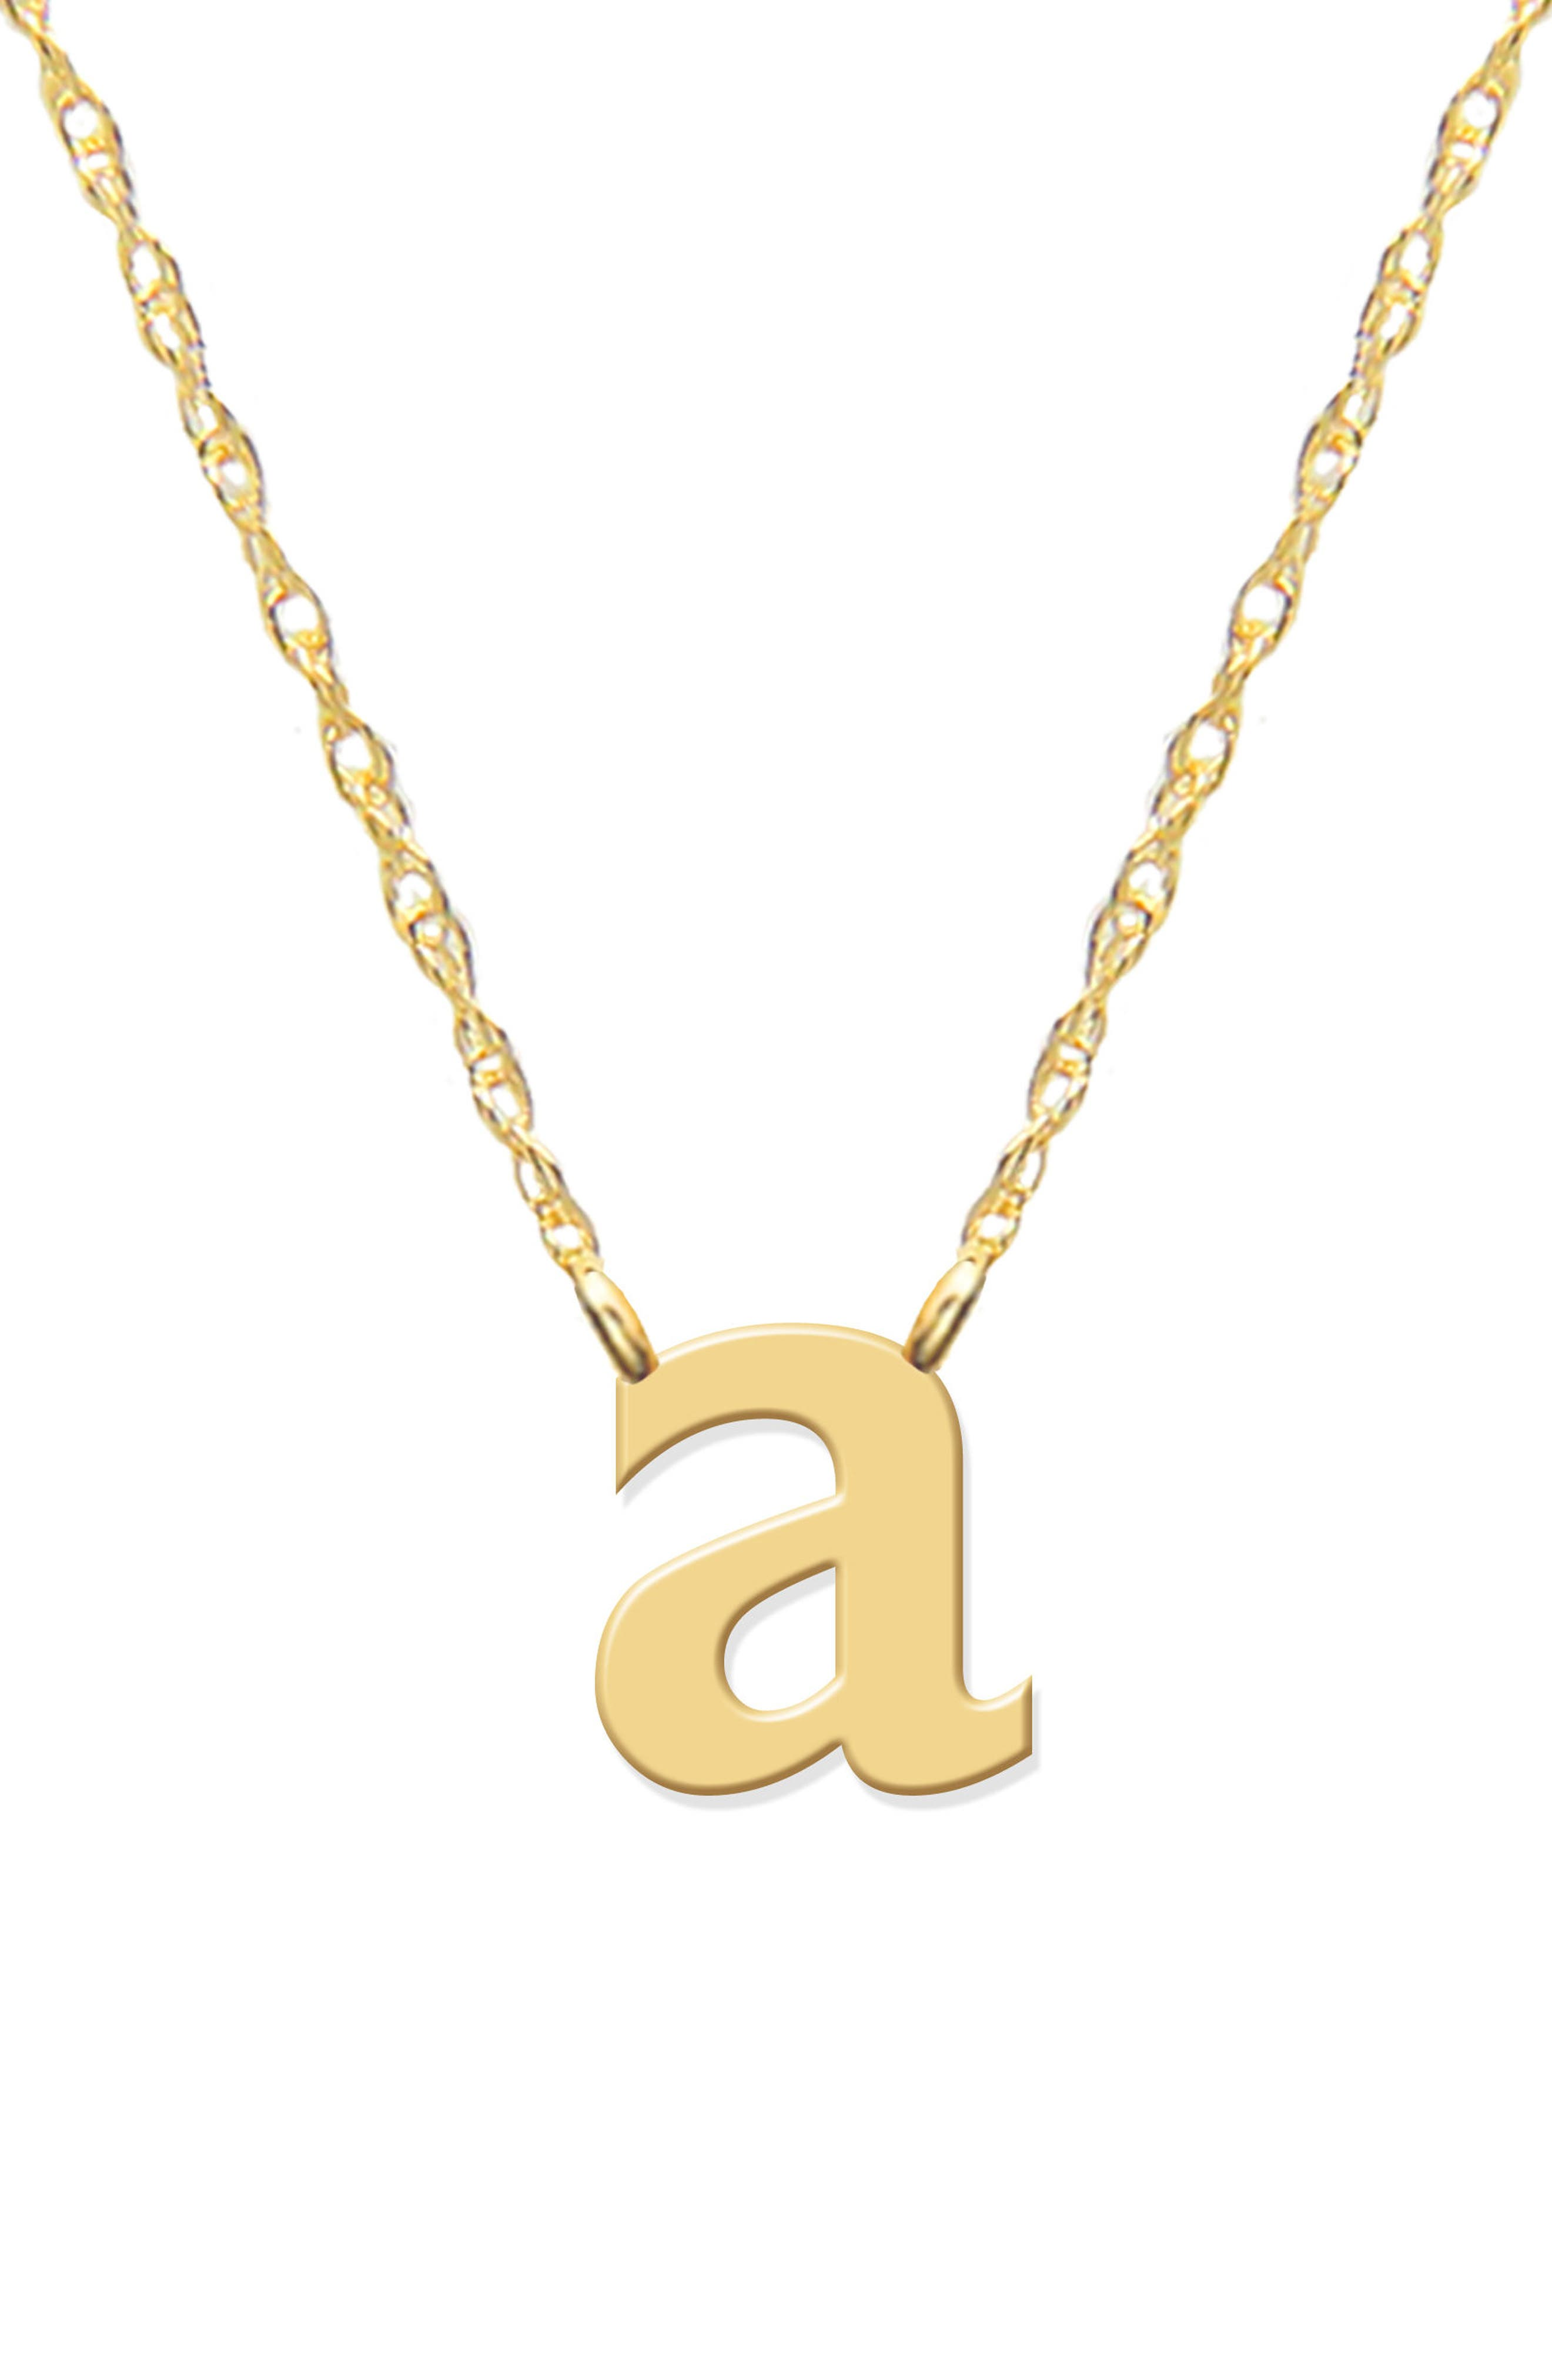 Lowercase Initial Pendant Necklace,                             Main thumbnail 1, color,                             GOLD- A